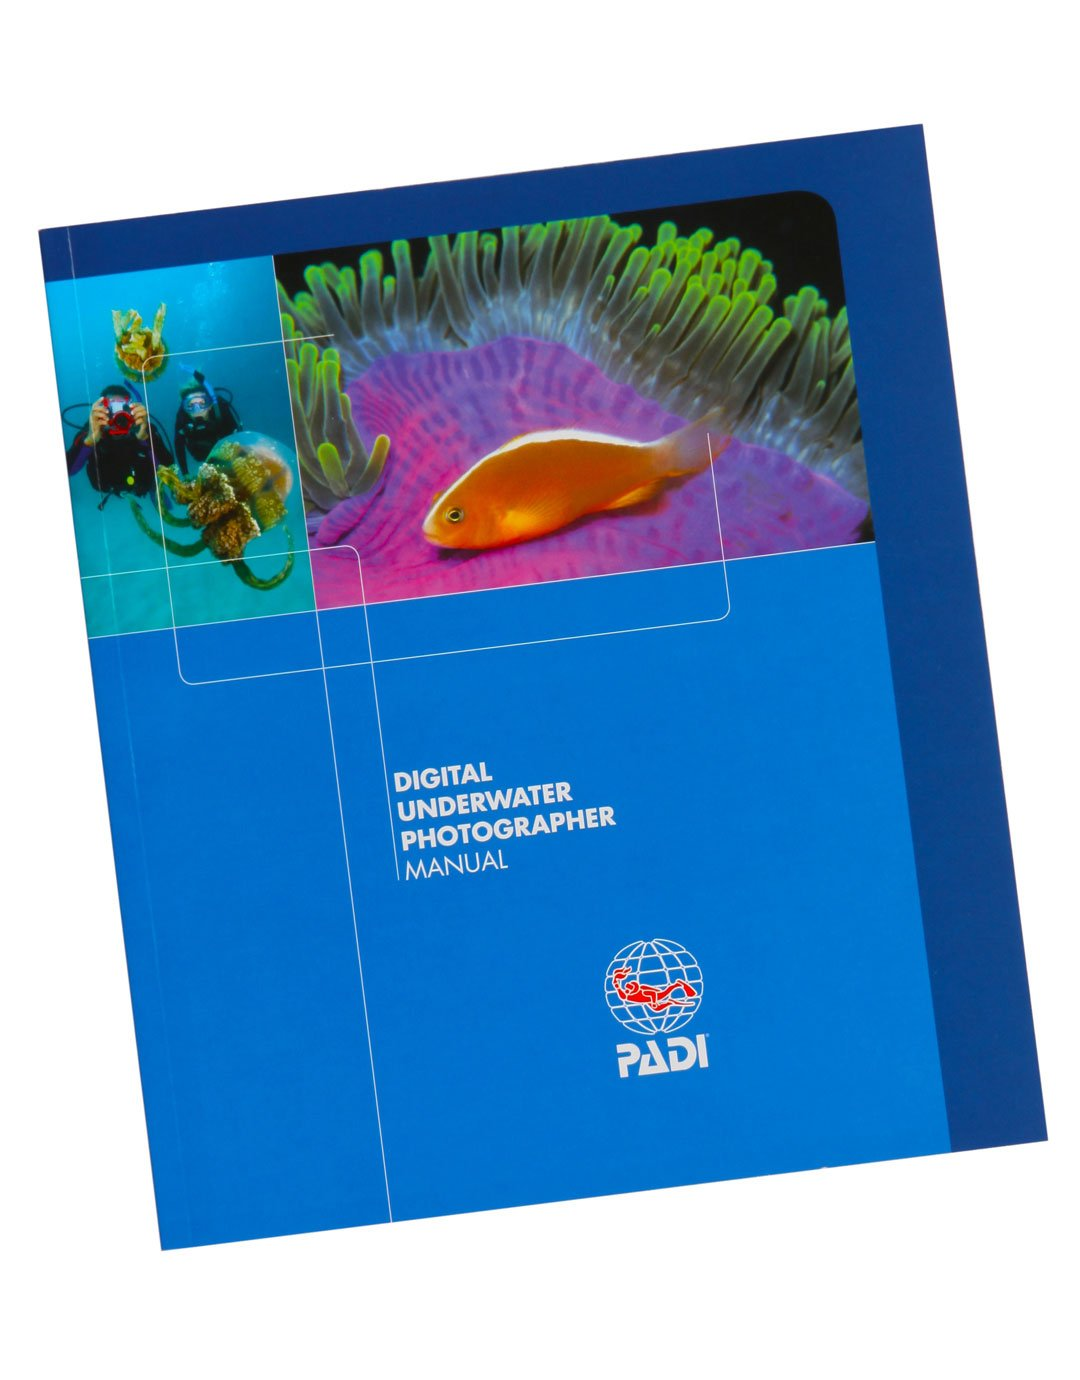 Image of PADI Digital Underwater Photographer Manual